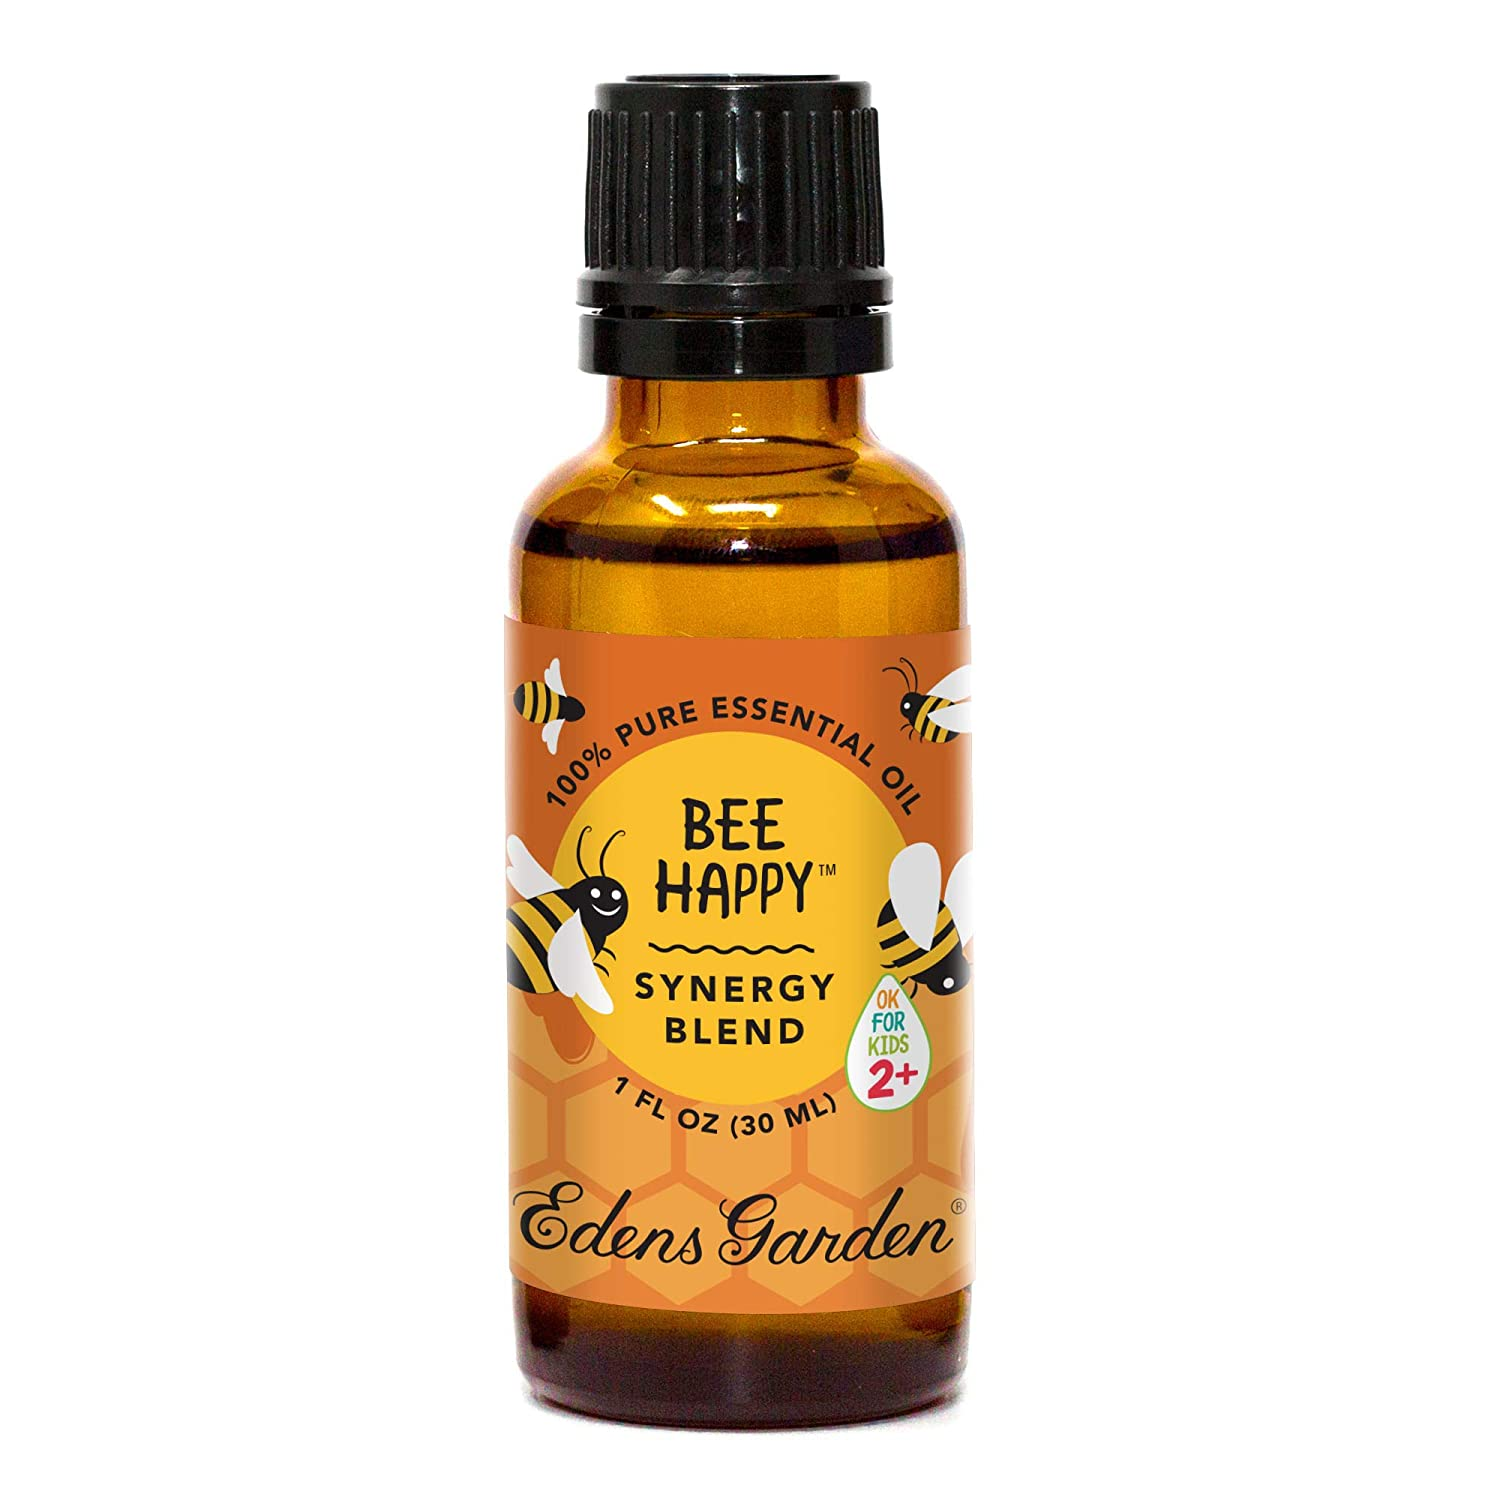 "Edens Garden Bee Happy""OK For Kids"" Essential Oil Synergy Blend, 100% Pure Therapeutic Grade (Child Safe 2+, Energy & Stress), 30 ml"